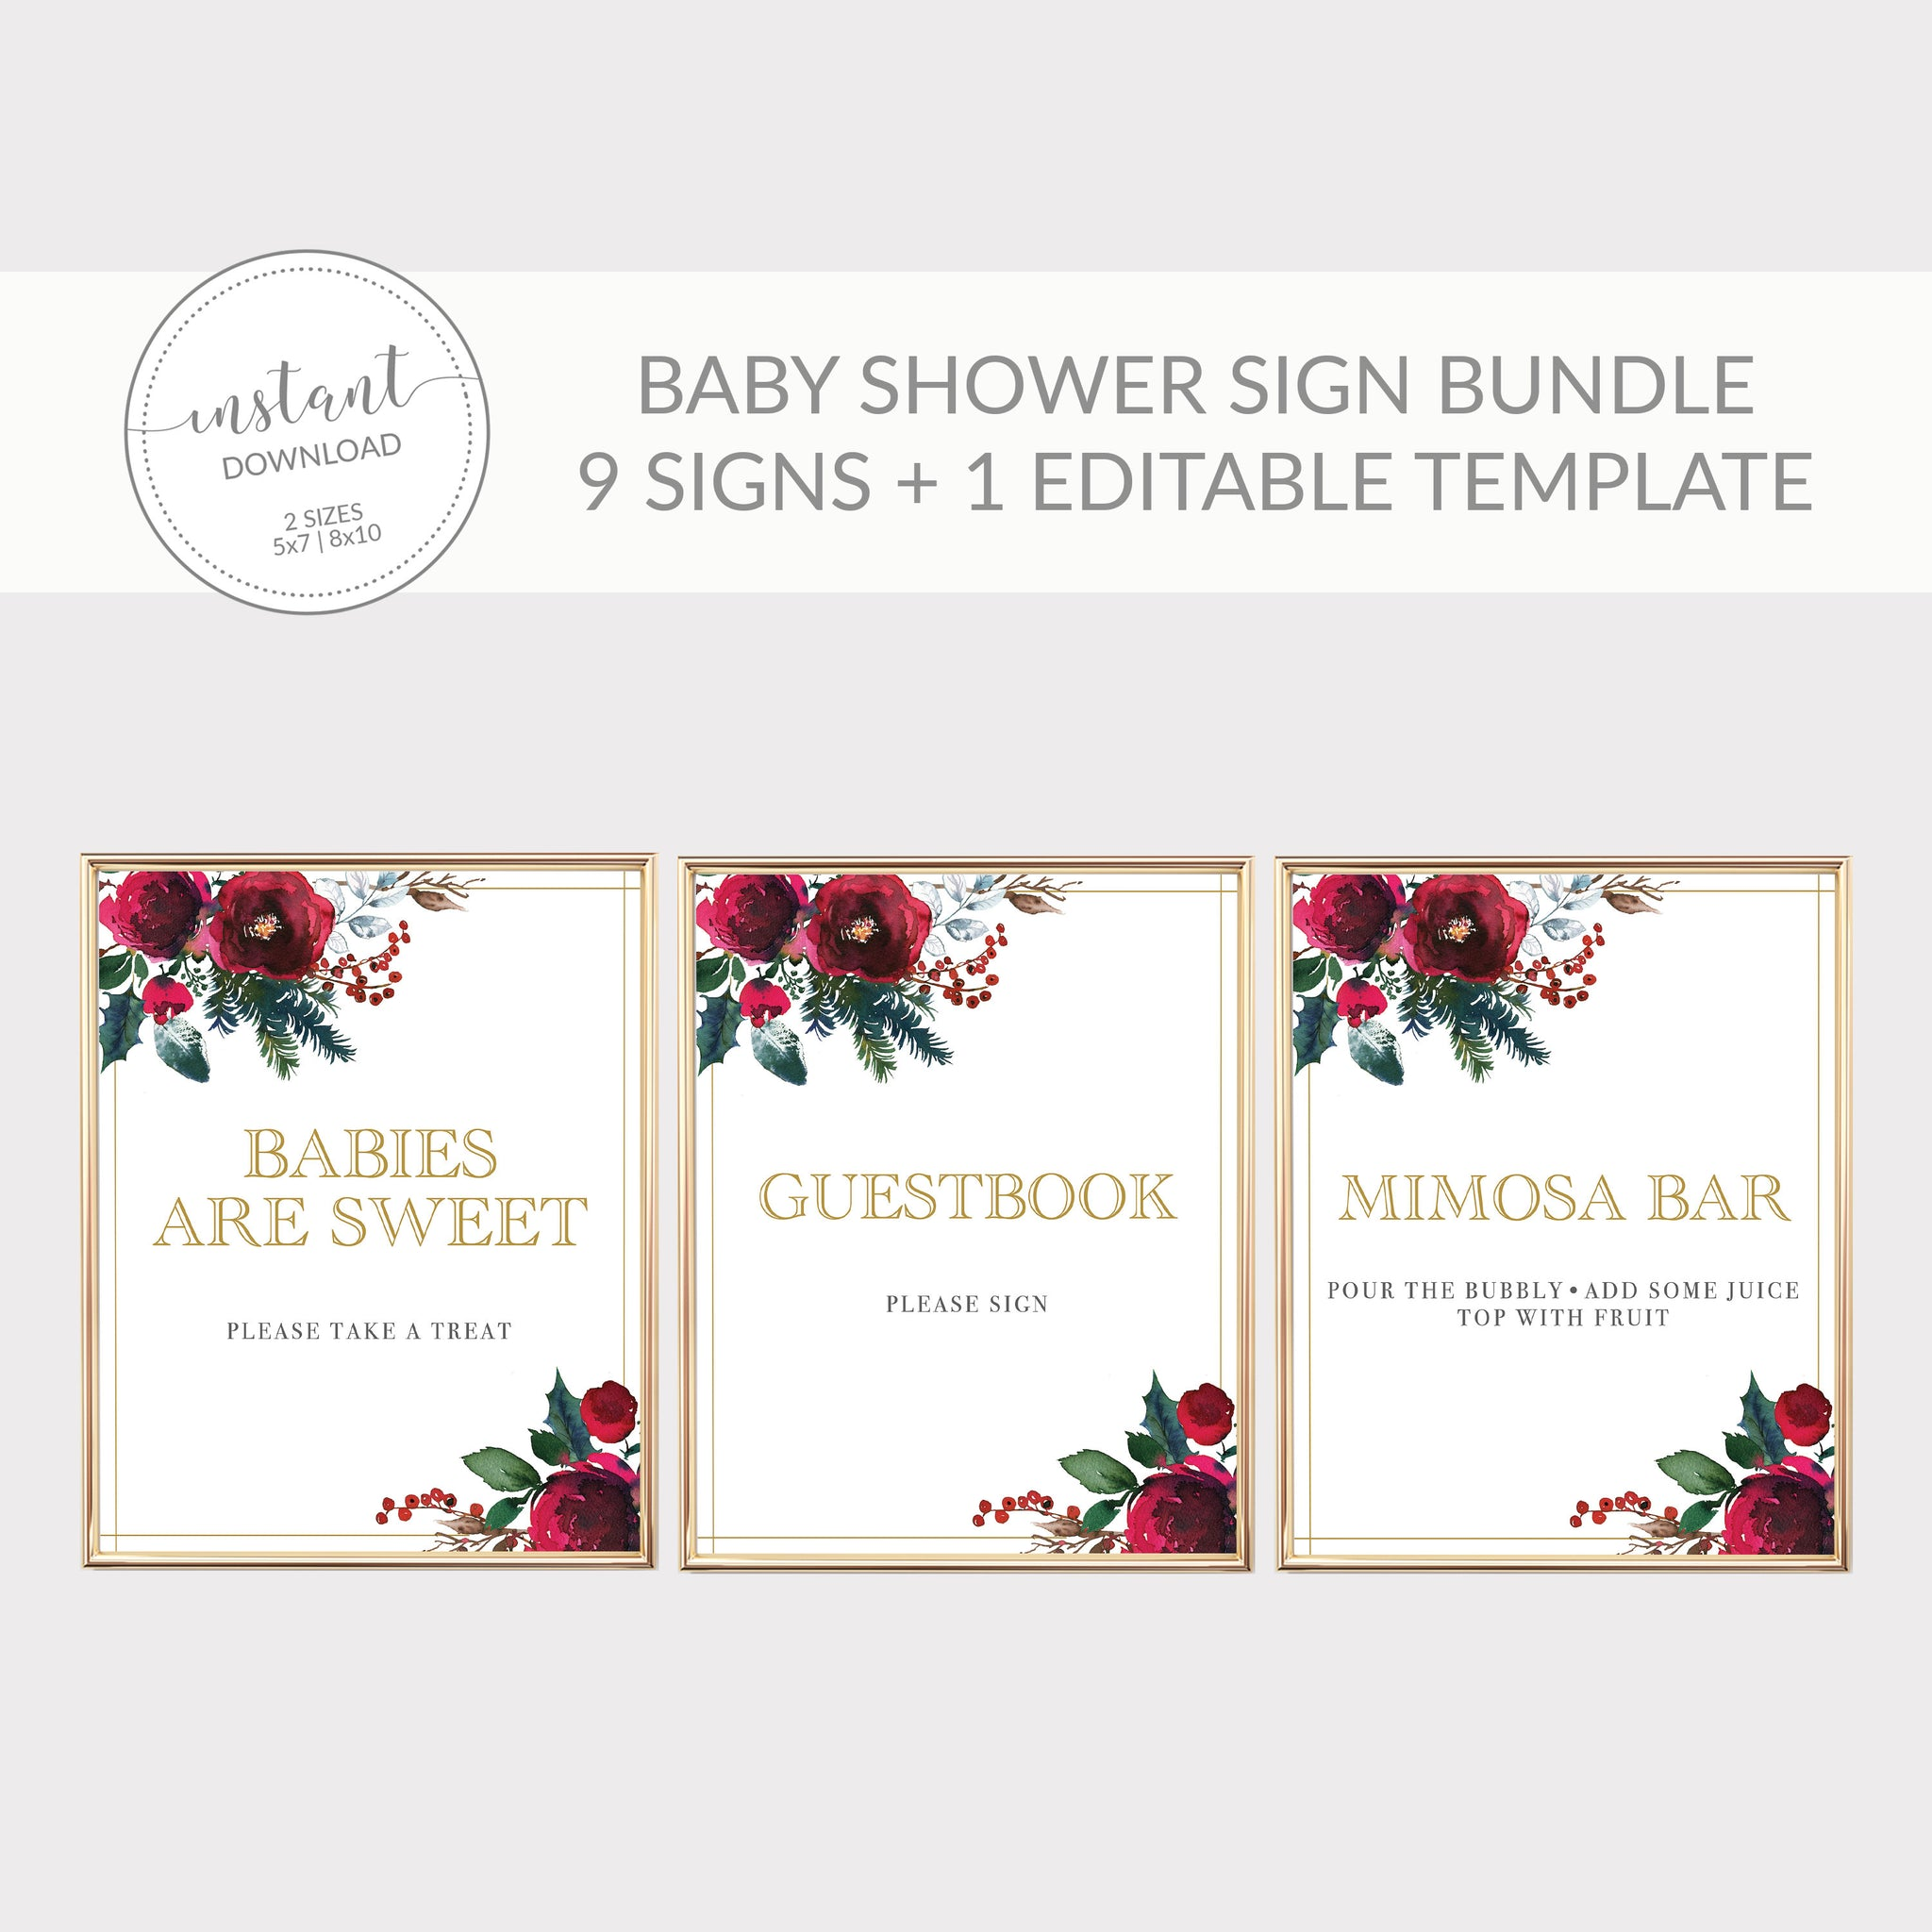 Christmas Baby Shower Sign Bundle, Christmas Baby Shower Decorations, Holiday Baby Shower Table Signs Printable, DIGITAL DOWNLOAD CG100